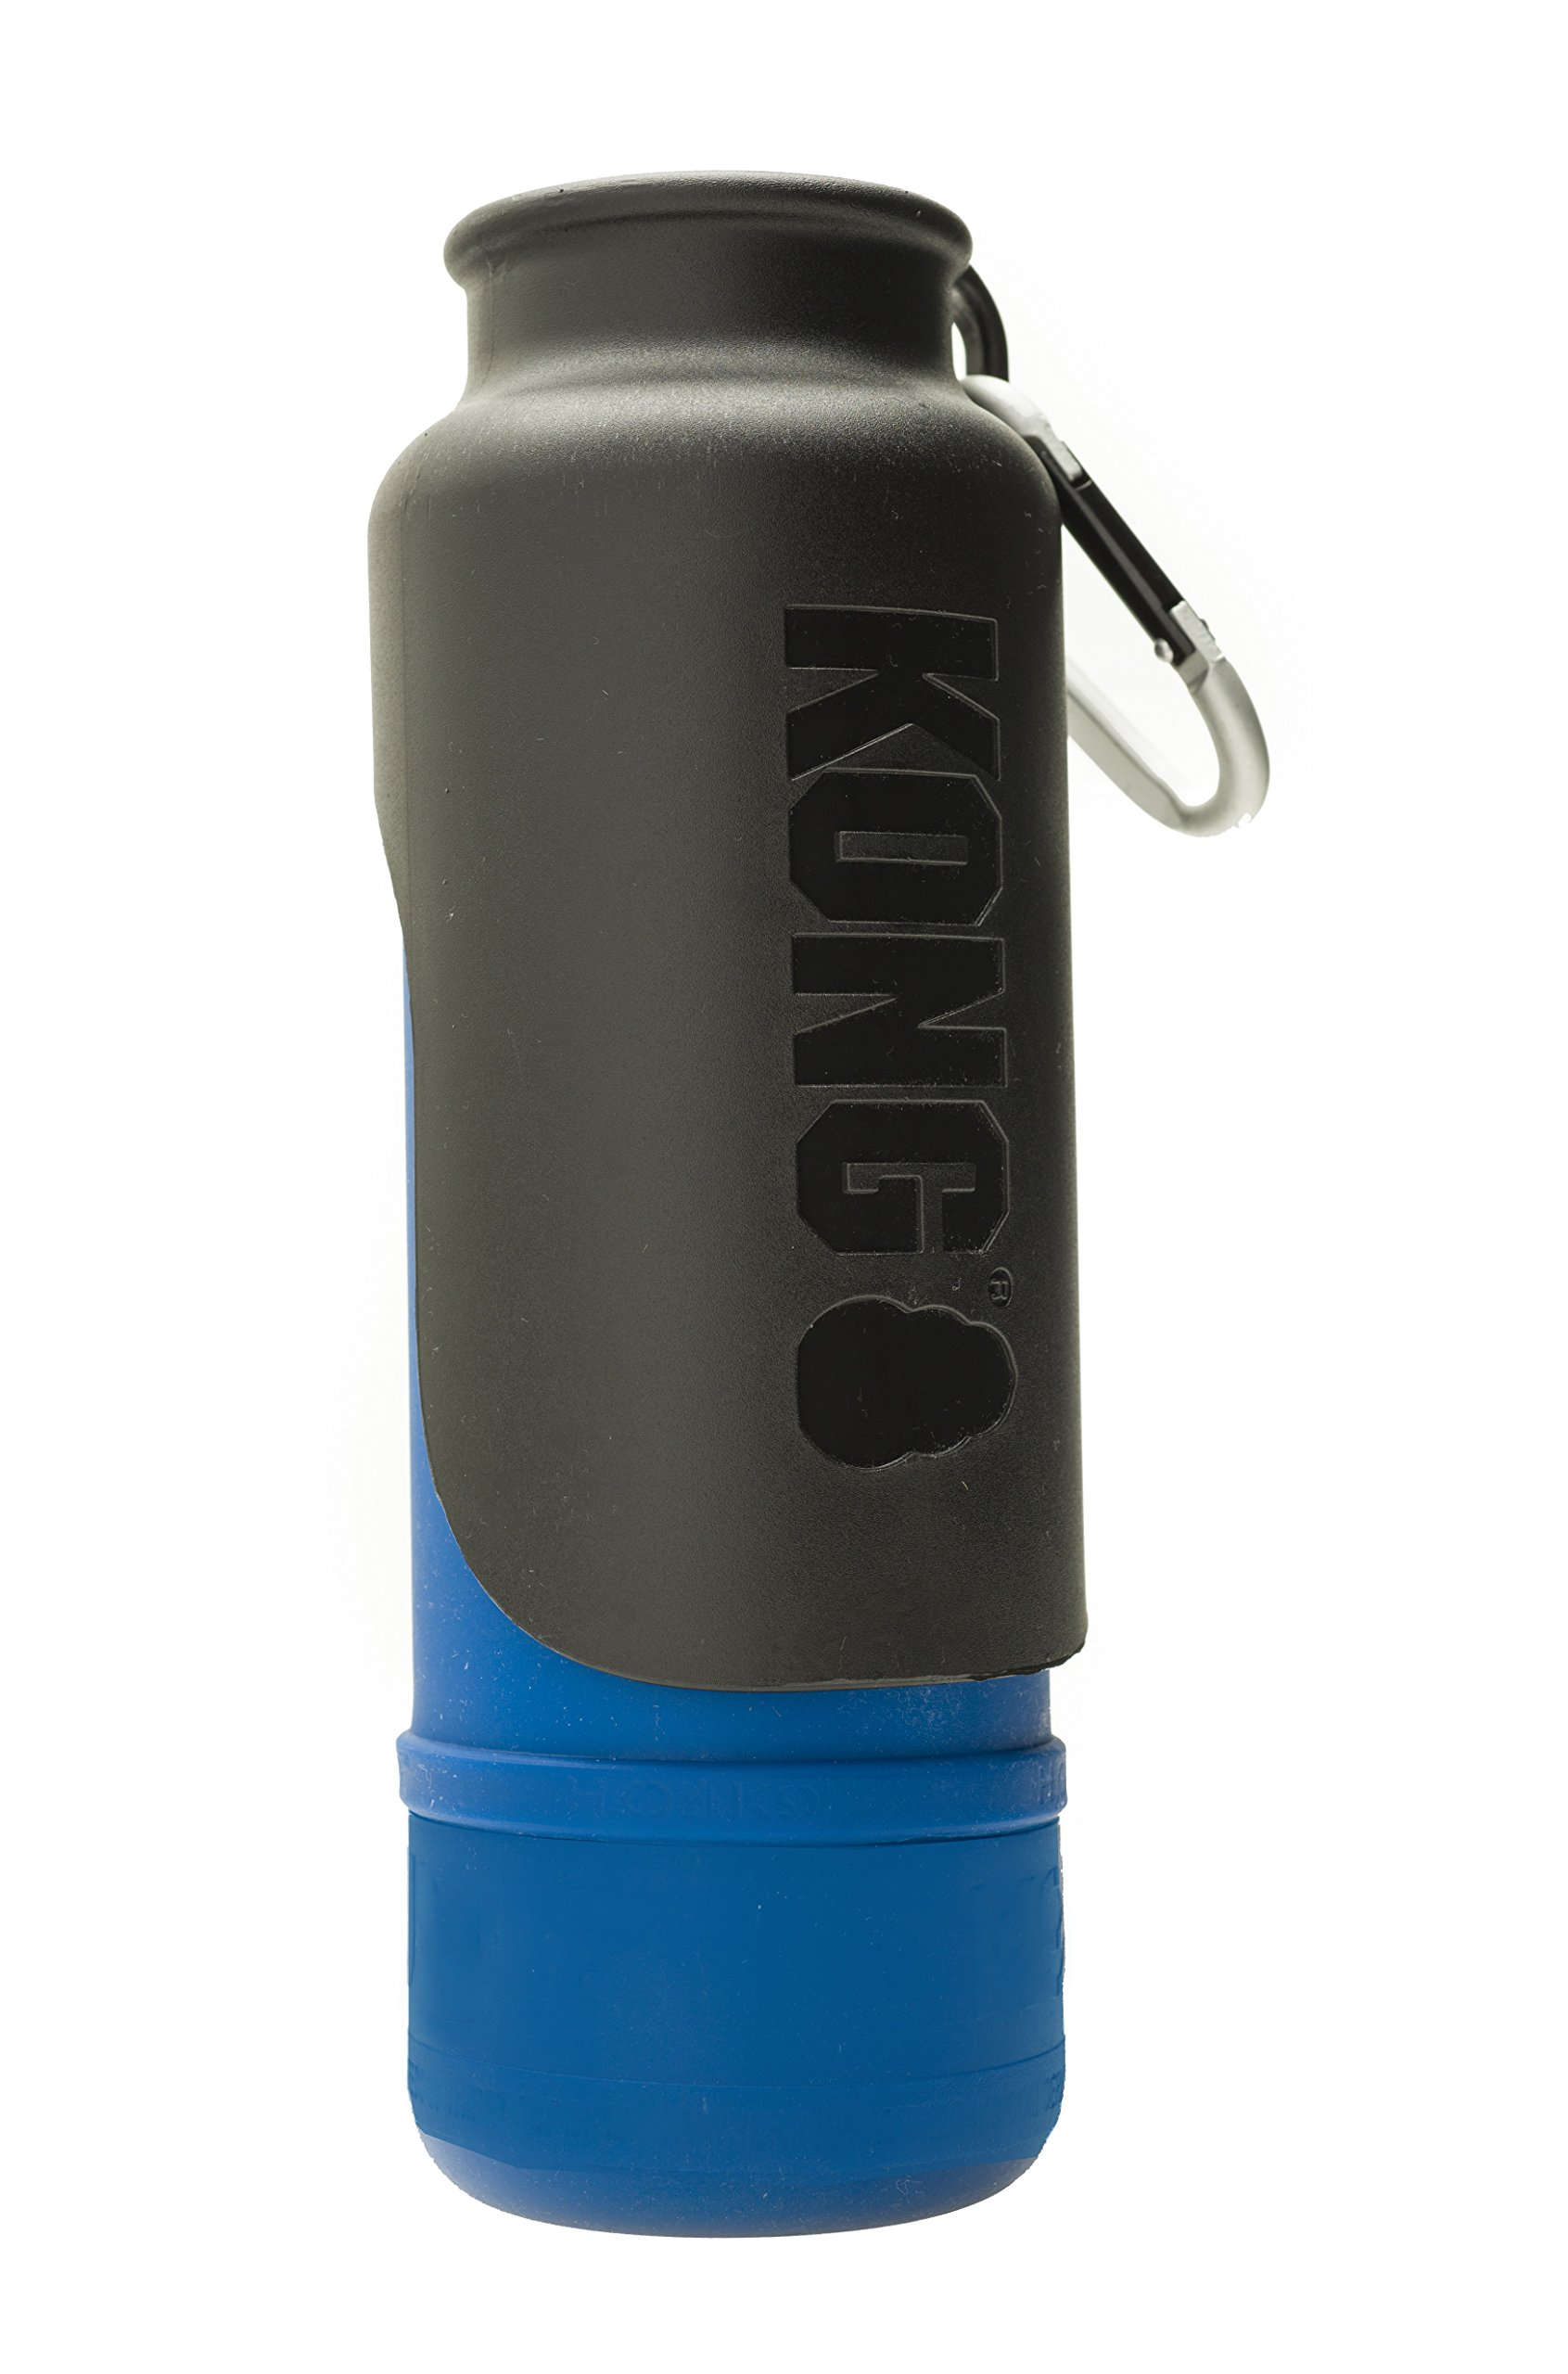 KONG H2O - Insulated Stainless Steel Dog Water Bottle - 25 oz - Blue